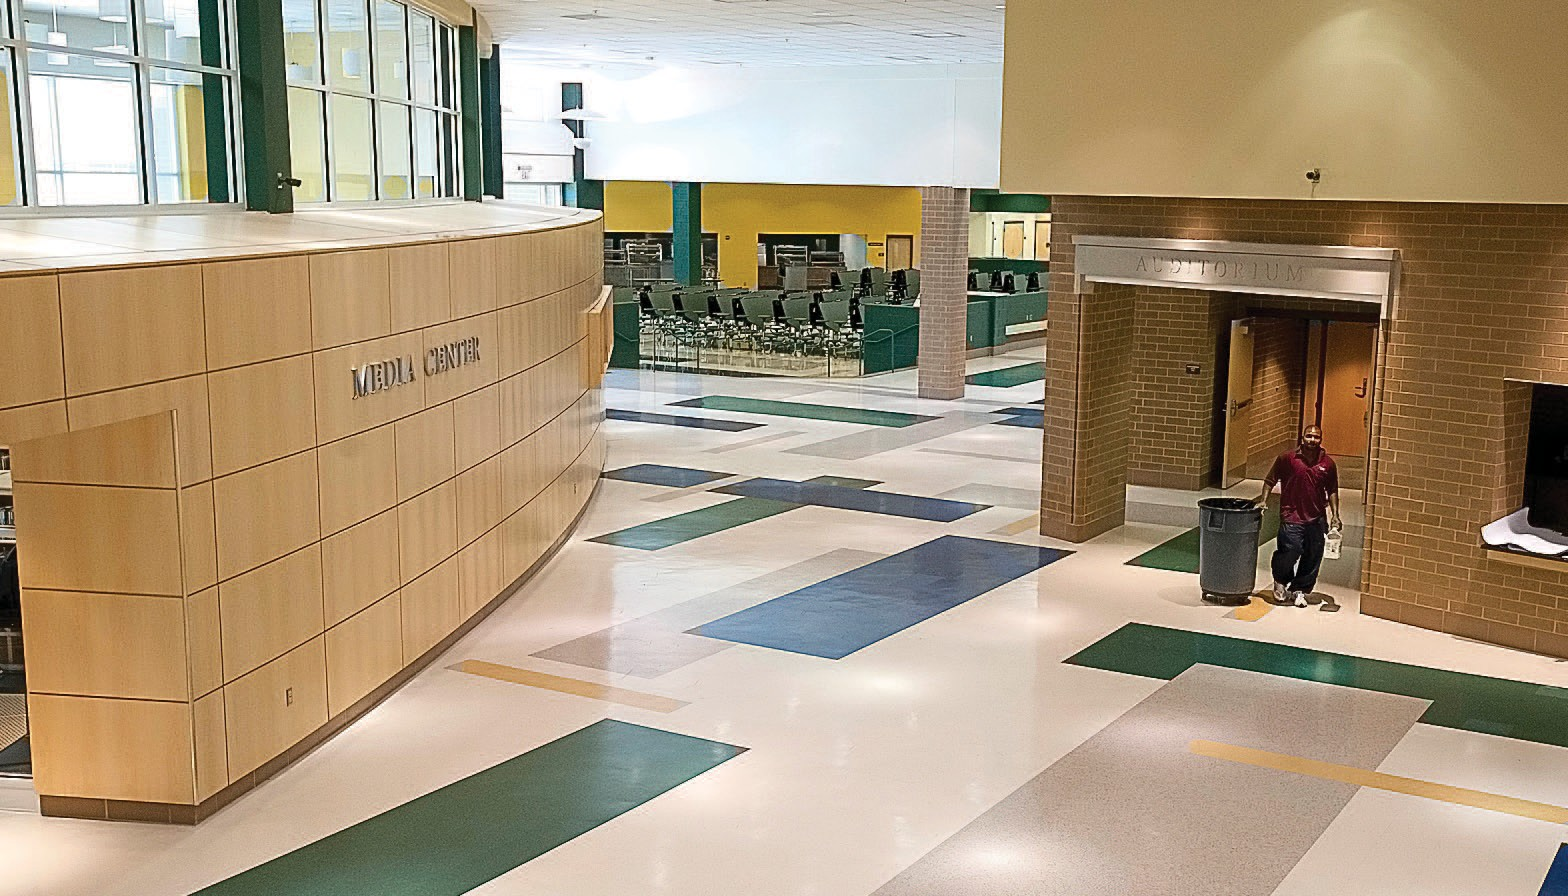 New year, new school for Clover Hill High | Chesterfield Observer